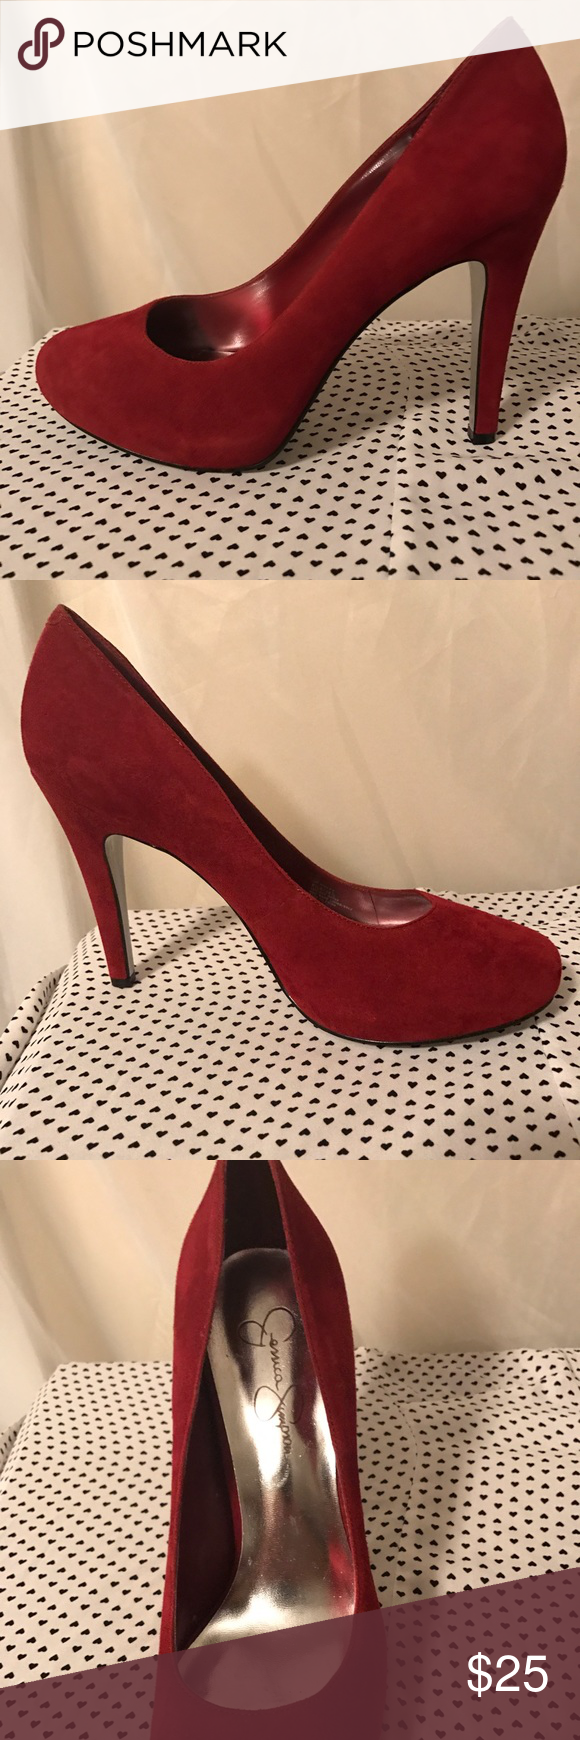 Jessica Simpson red suede heels pumps 8.5 Brand new never worn! They are real suede . Jessica Simpson Shoes Heels